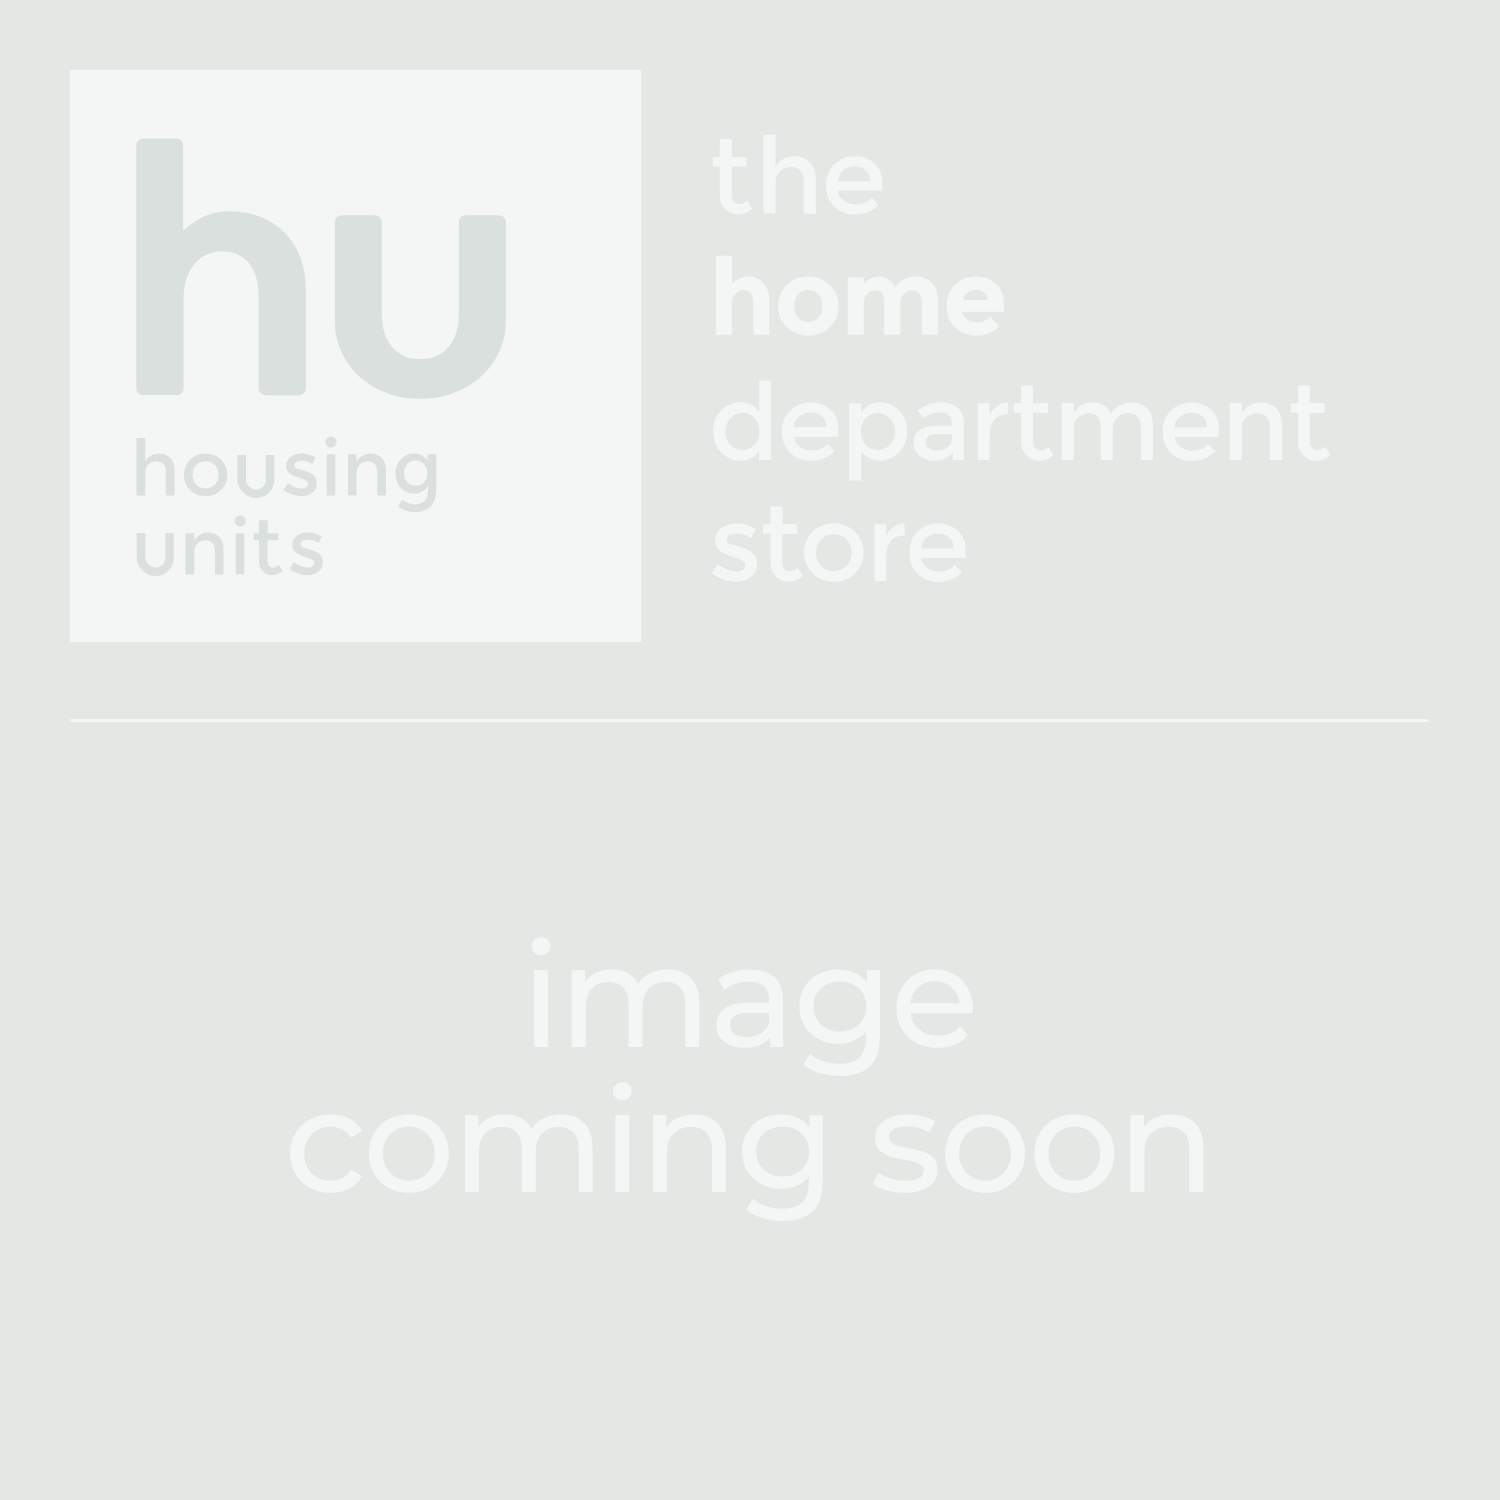 Galaxy Coffee Table - Lifestyle | Housing Units